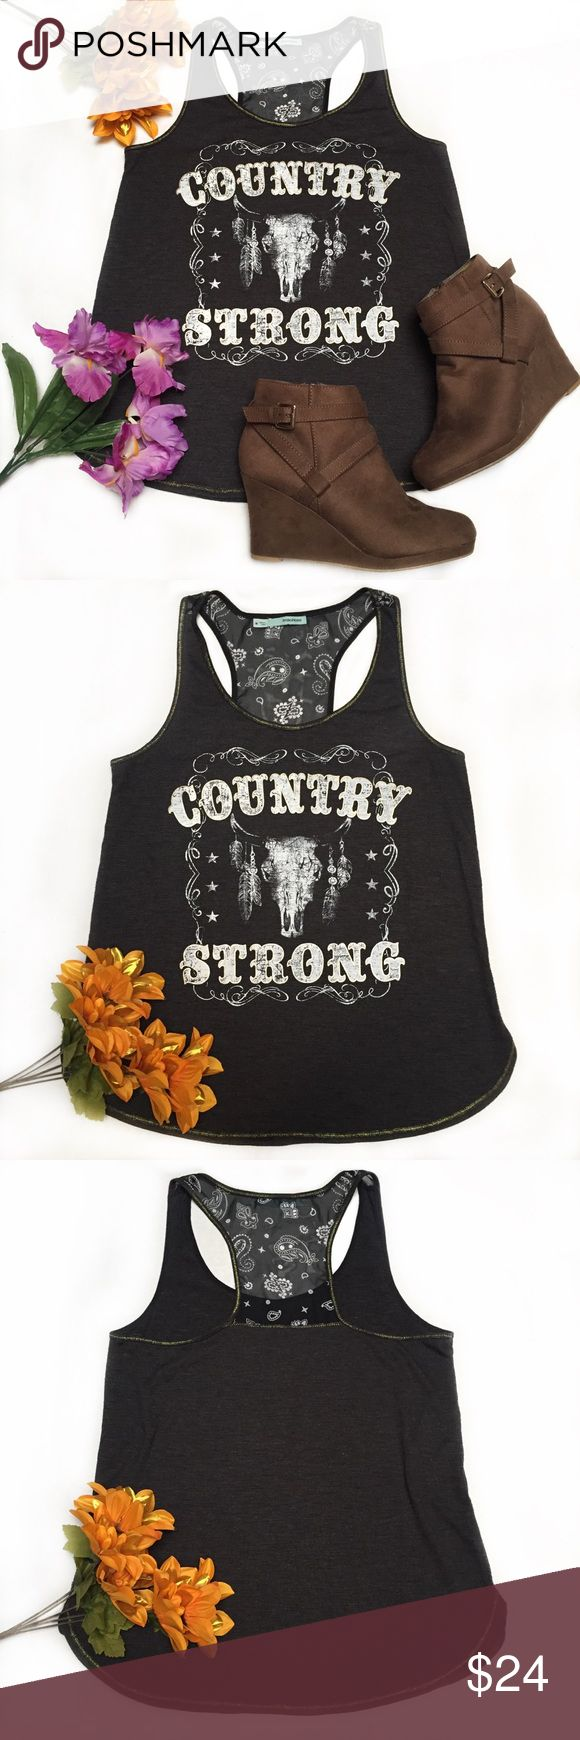 """Maurices COUNTRY STRONG Paisley Razorback Tank Maurices COUNTRY STRONG Paisley Razorback Tank   DETAILS //  • Size: Medium  • Rockin Country Strong, Feathers & Ox graphic • Style: Razorback • Sheer PAISLEY design on back!  • Gold Glittery accents  • Rounded, Side Split bottom hem  • Color: Dark Gray with White text  • Lightweight & Thin  • Material: Polyester/ Rayon   CONDITION // • Excellent Used Condition  • Length: 24.5""""  • Pit to Pit: 17""""  ♡Perfect for Backroads, Country concerts…"""